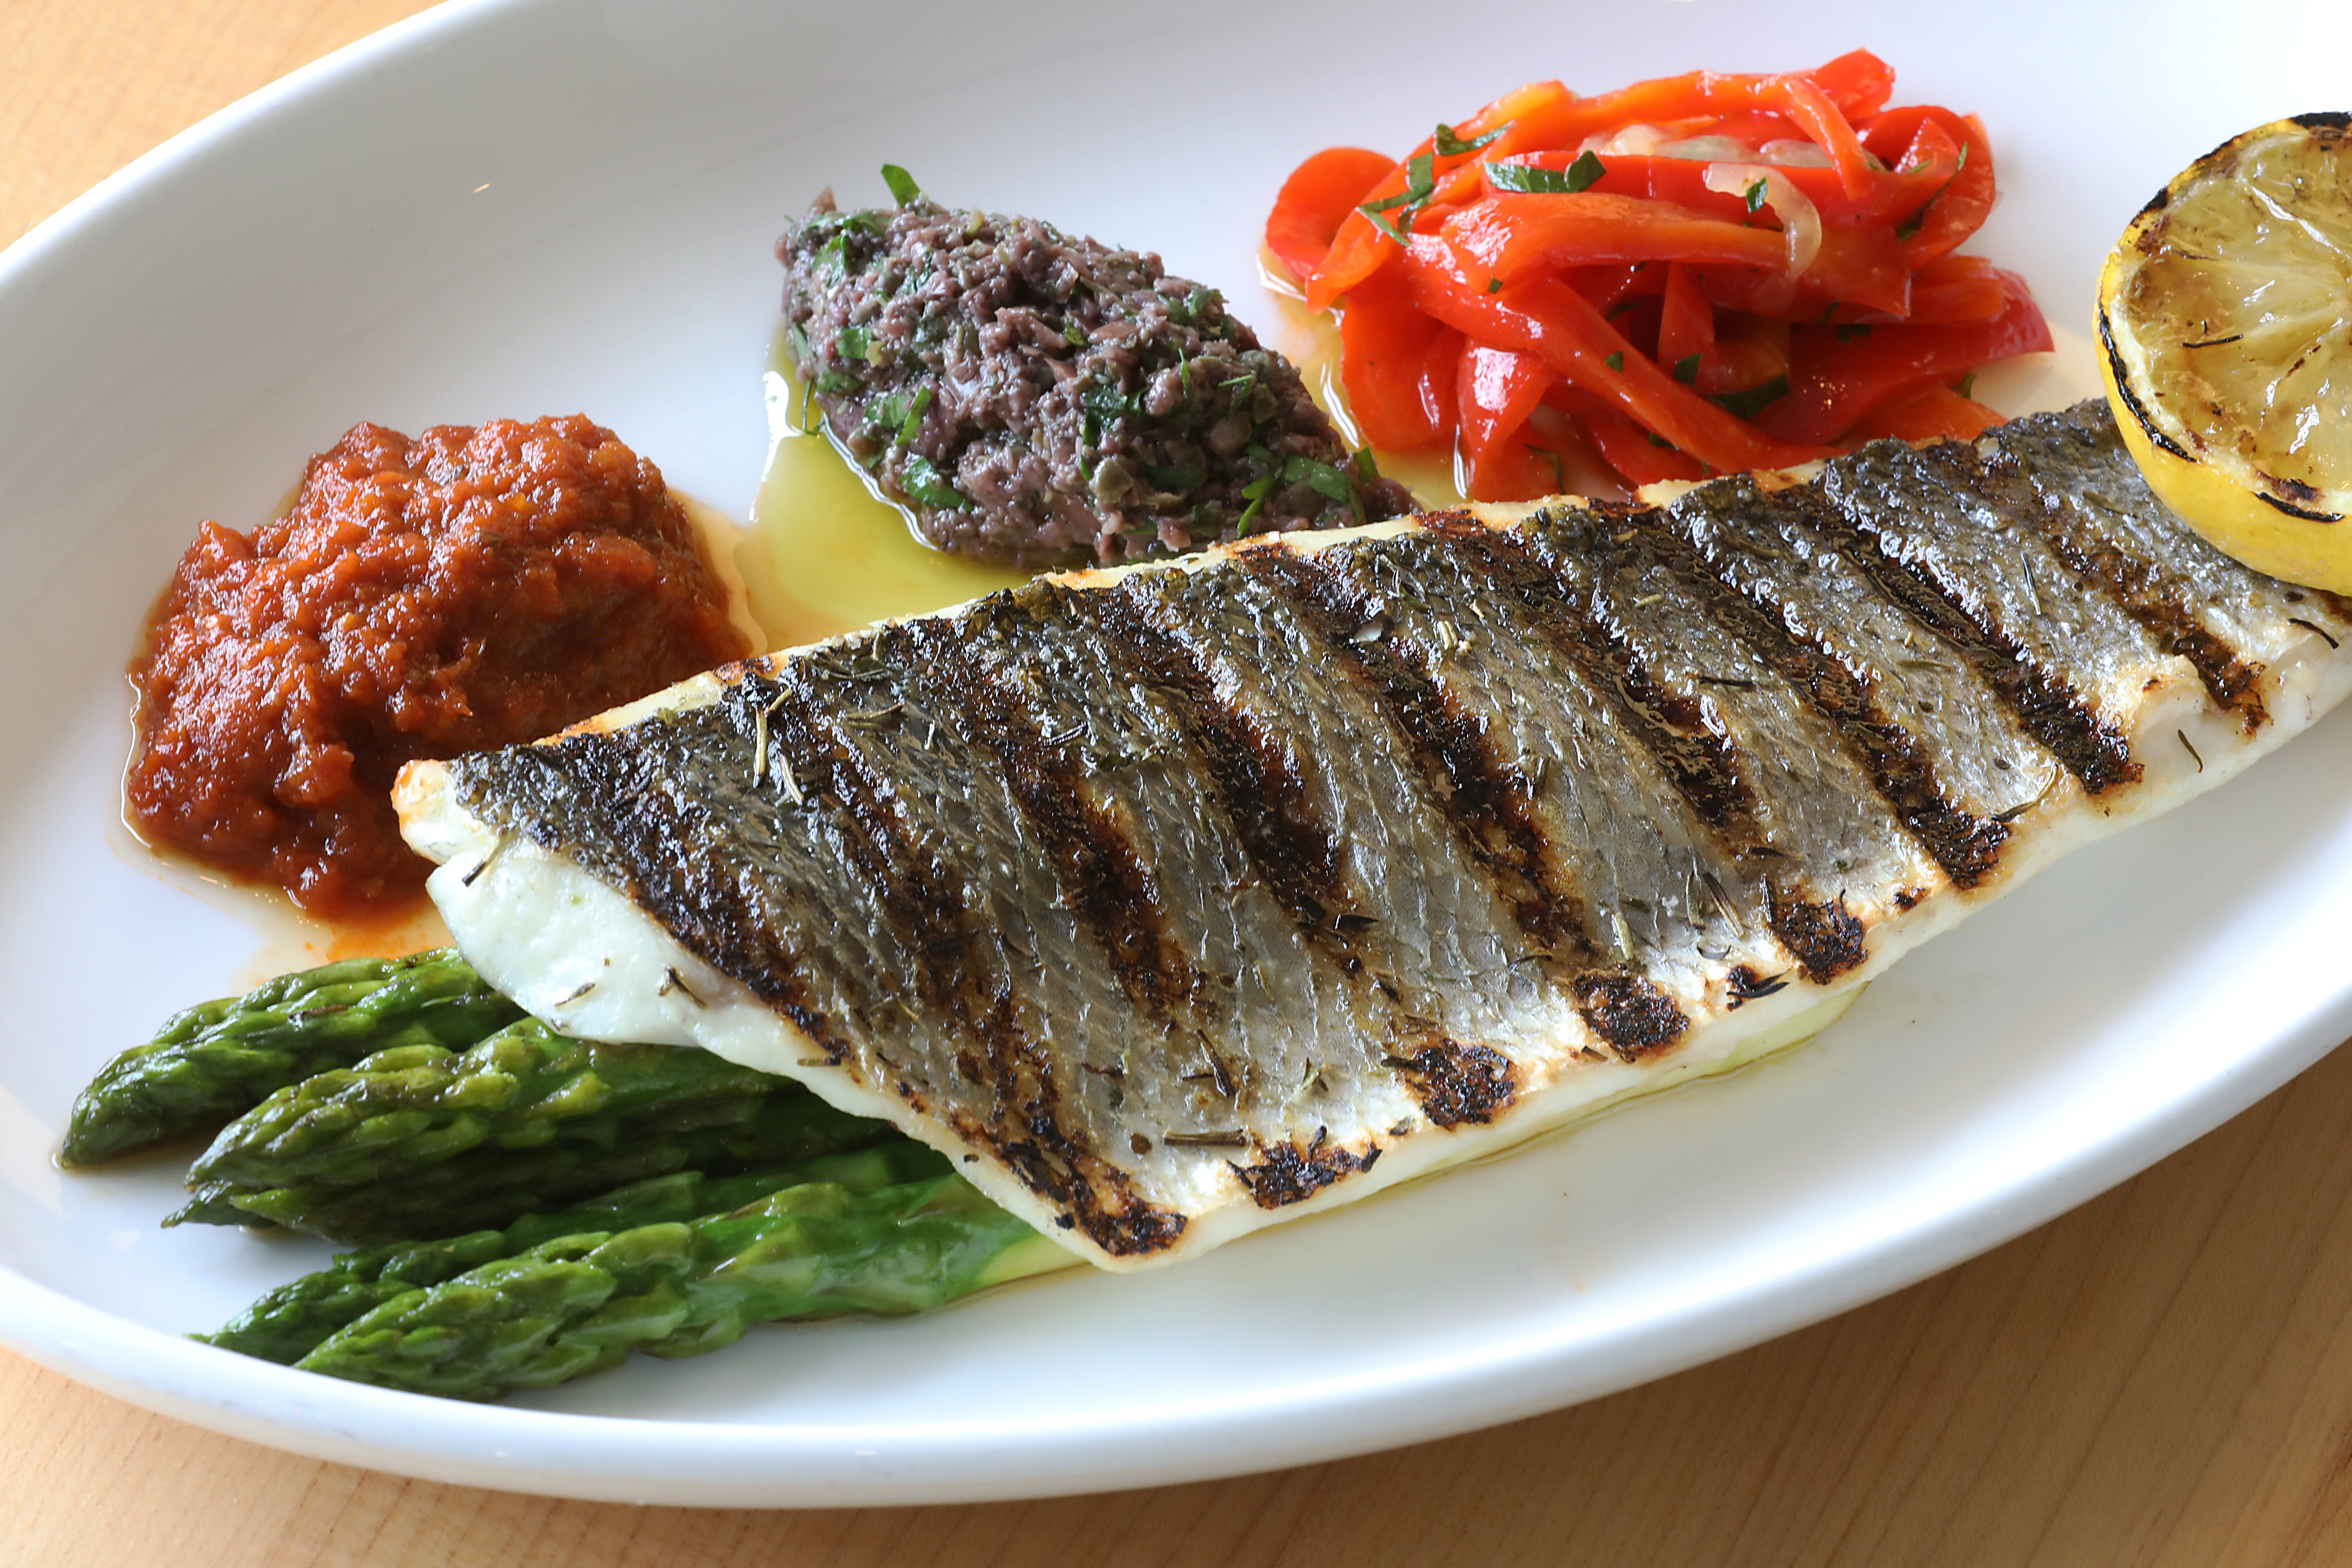 A Mediterranean diet included fruits, vegetables and fish.